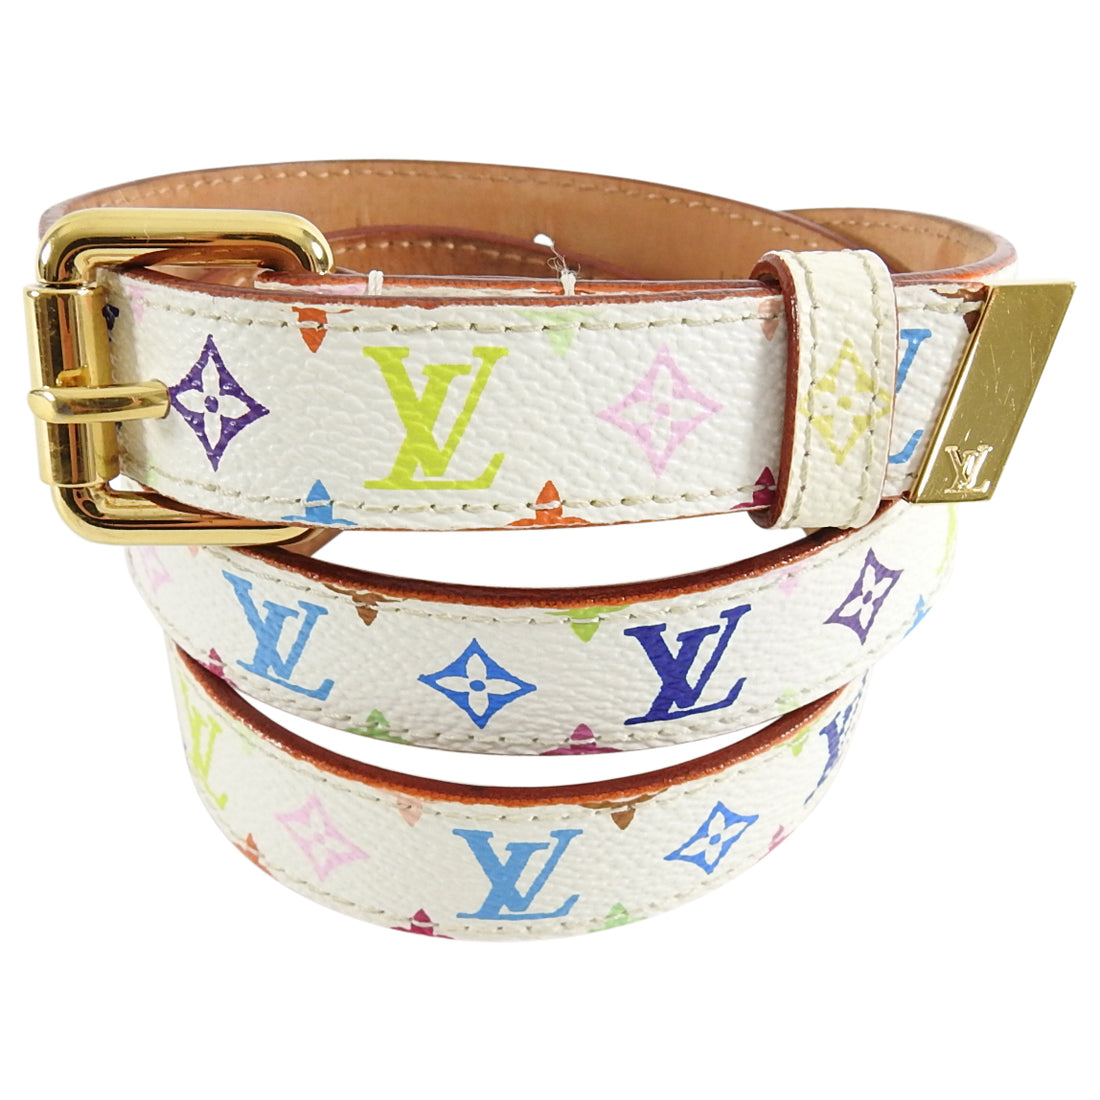 Louis Vuitton White Multicolore 20mm Monogram Belt - 80